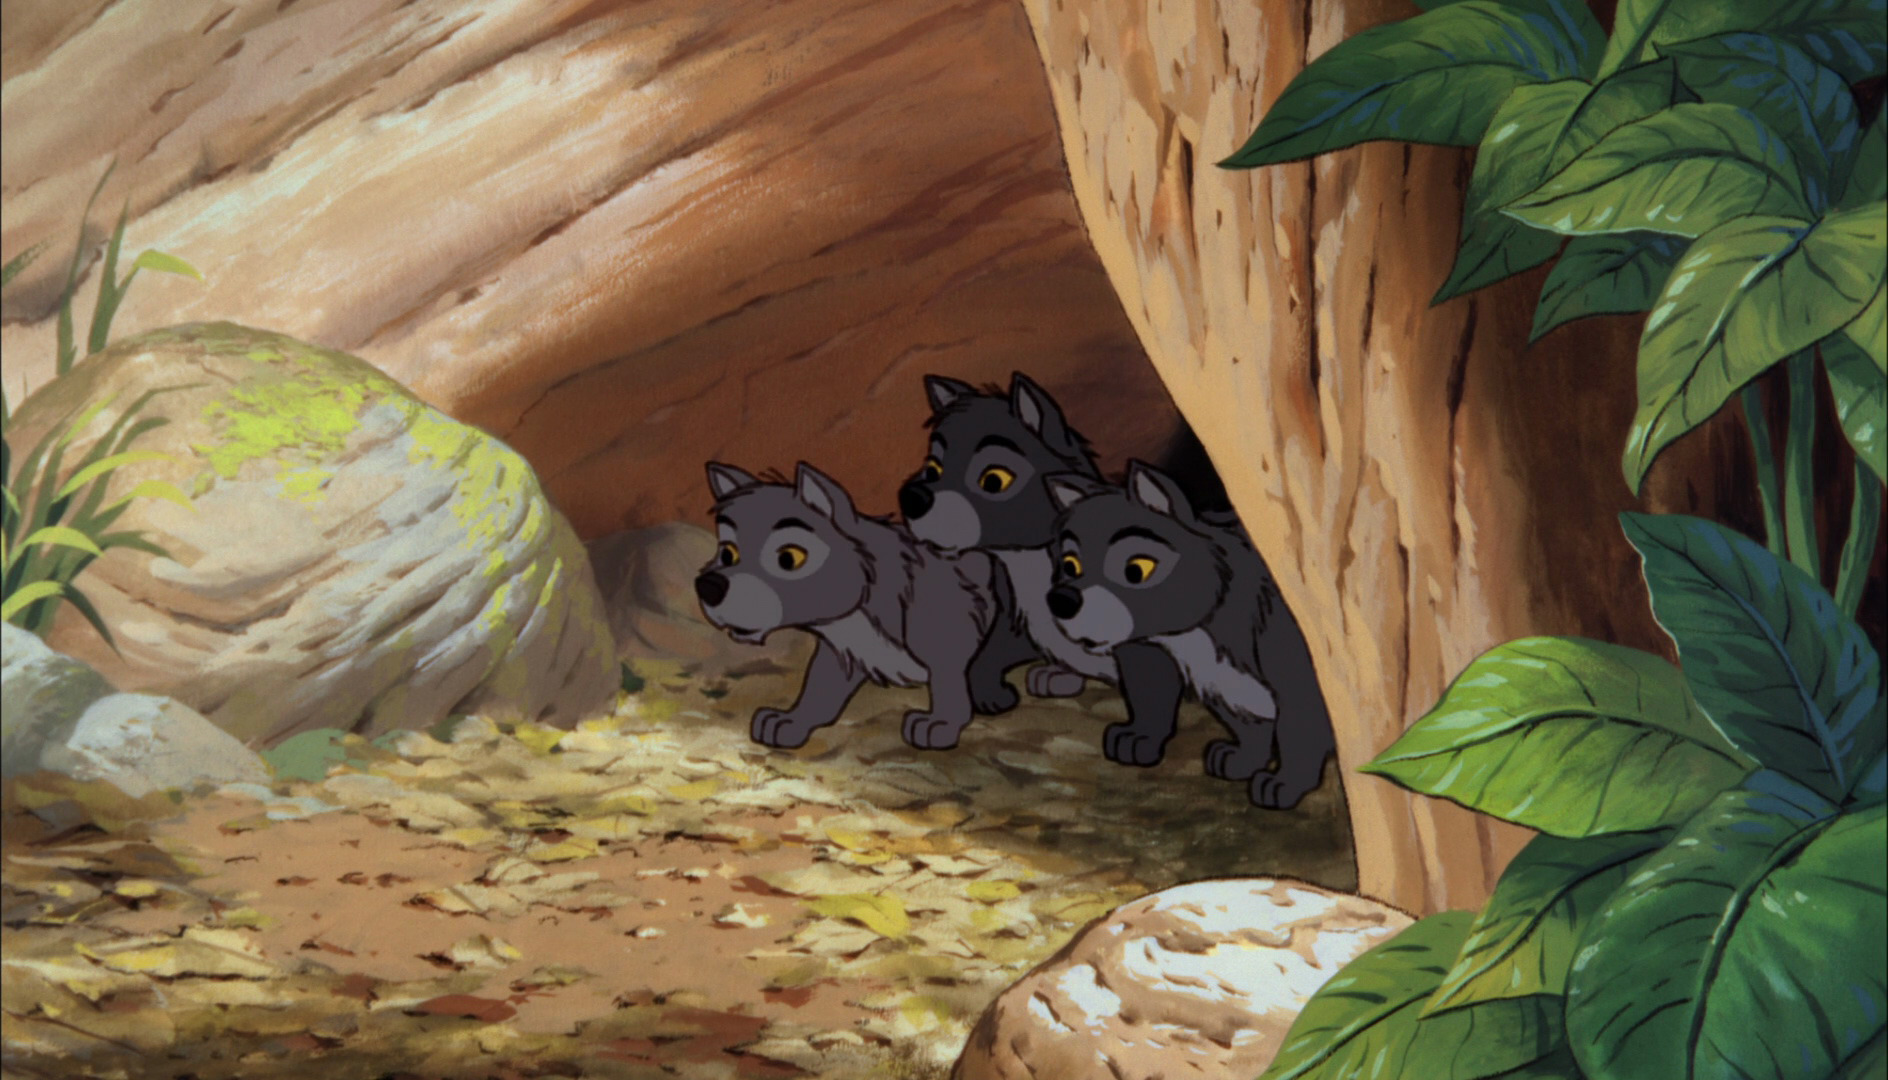 The Jungle Book 2016 (1967 style) Clip 4: Wolves - YouTube